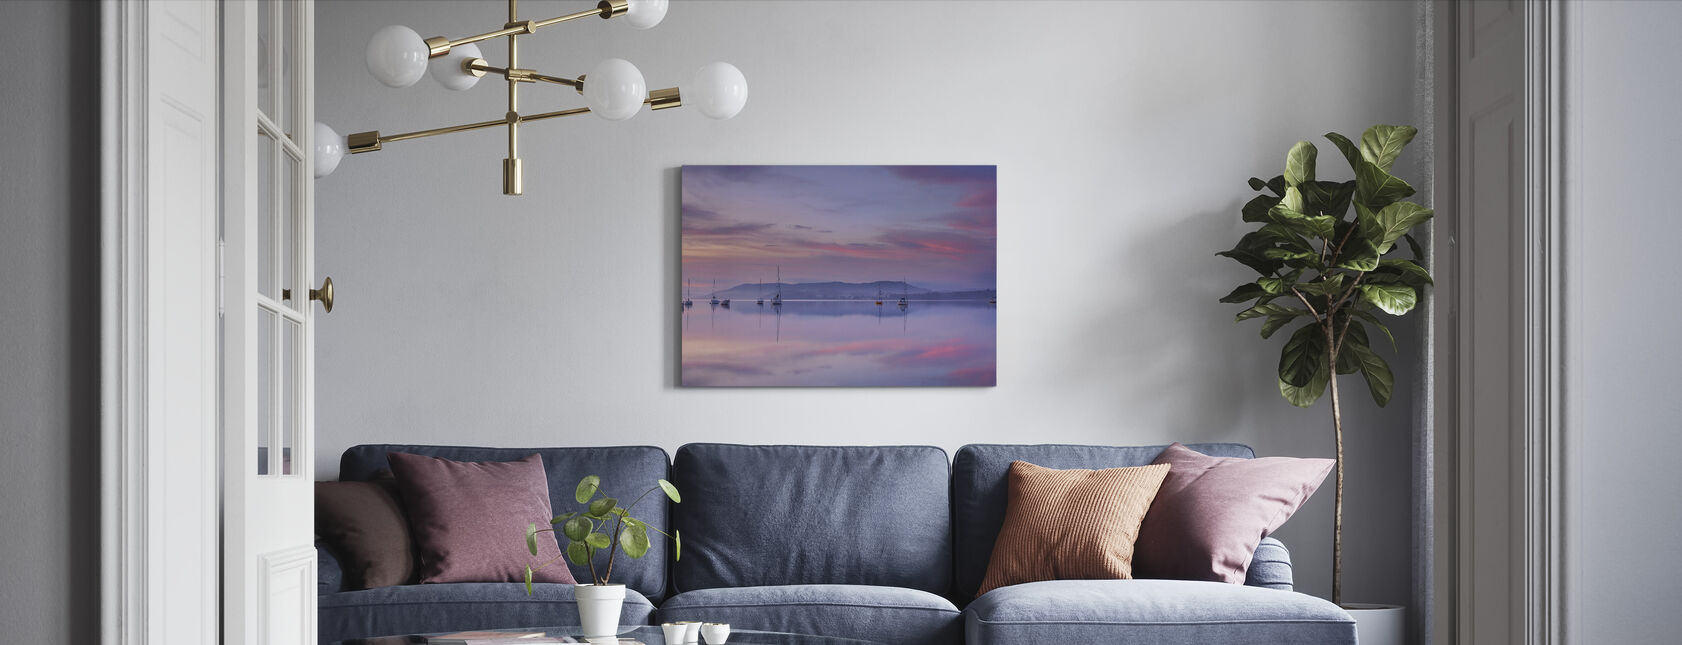 Morning Mood - Canvas print - Living Room